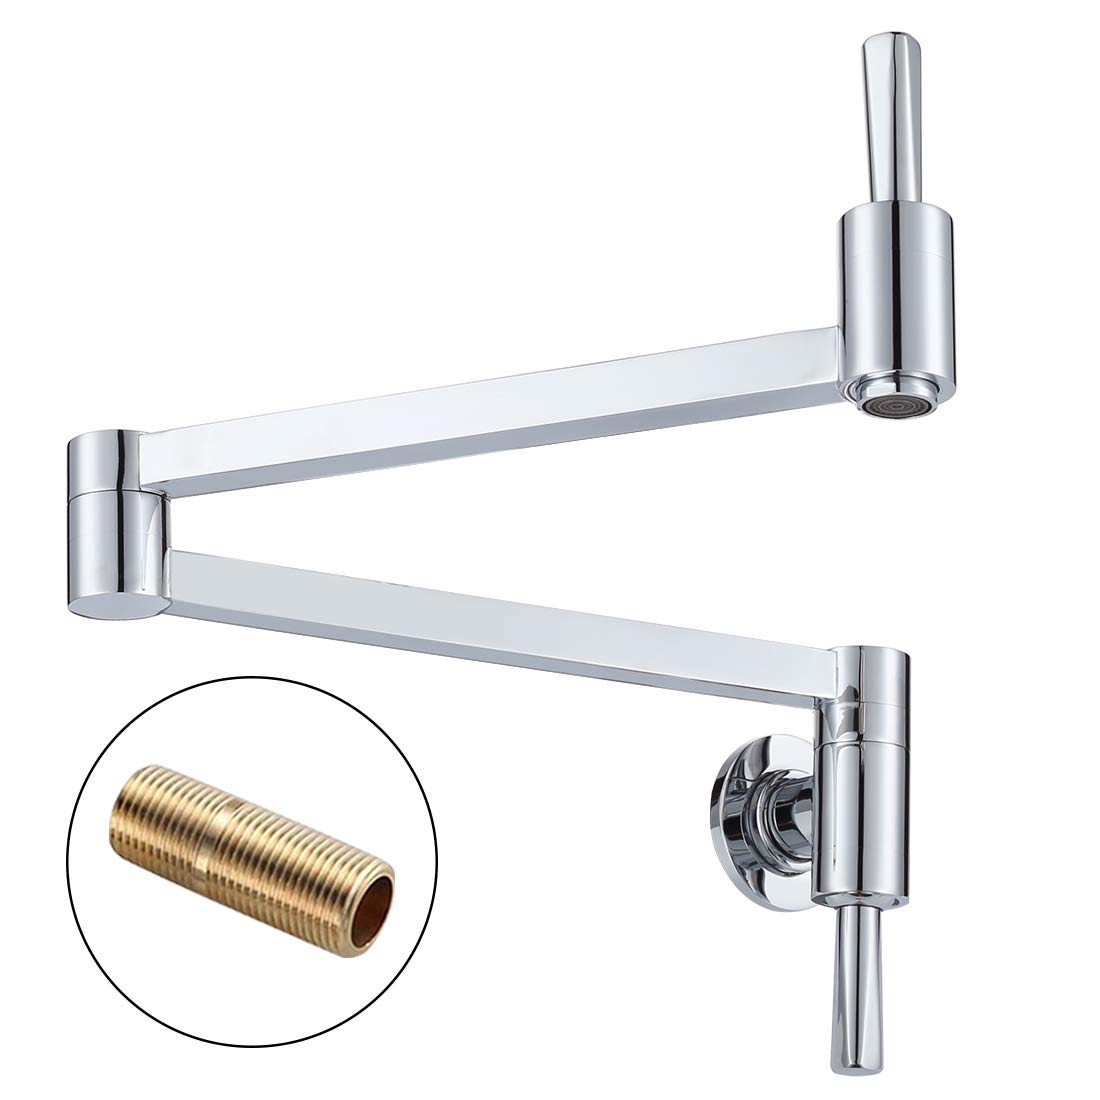 WOWOW Pot Filler Faucet Chrome Commercial Faucet Folding Kitchen Faucet Lead-free Wall Mount Restaurant Faucet Brass 2 Handles Double Joint Swing Arm Kitchen Faucet by WOWOW